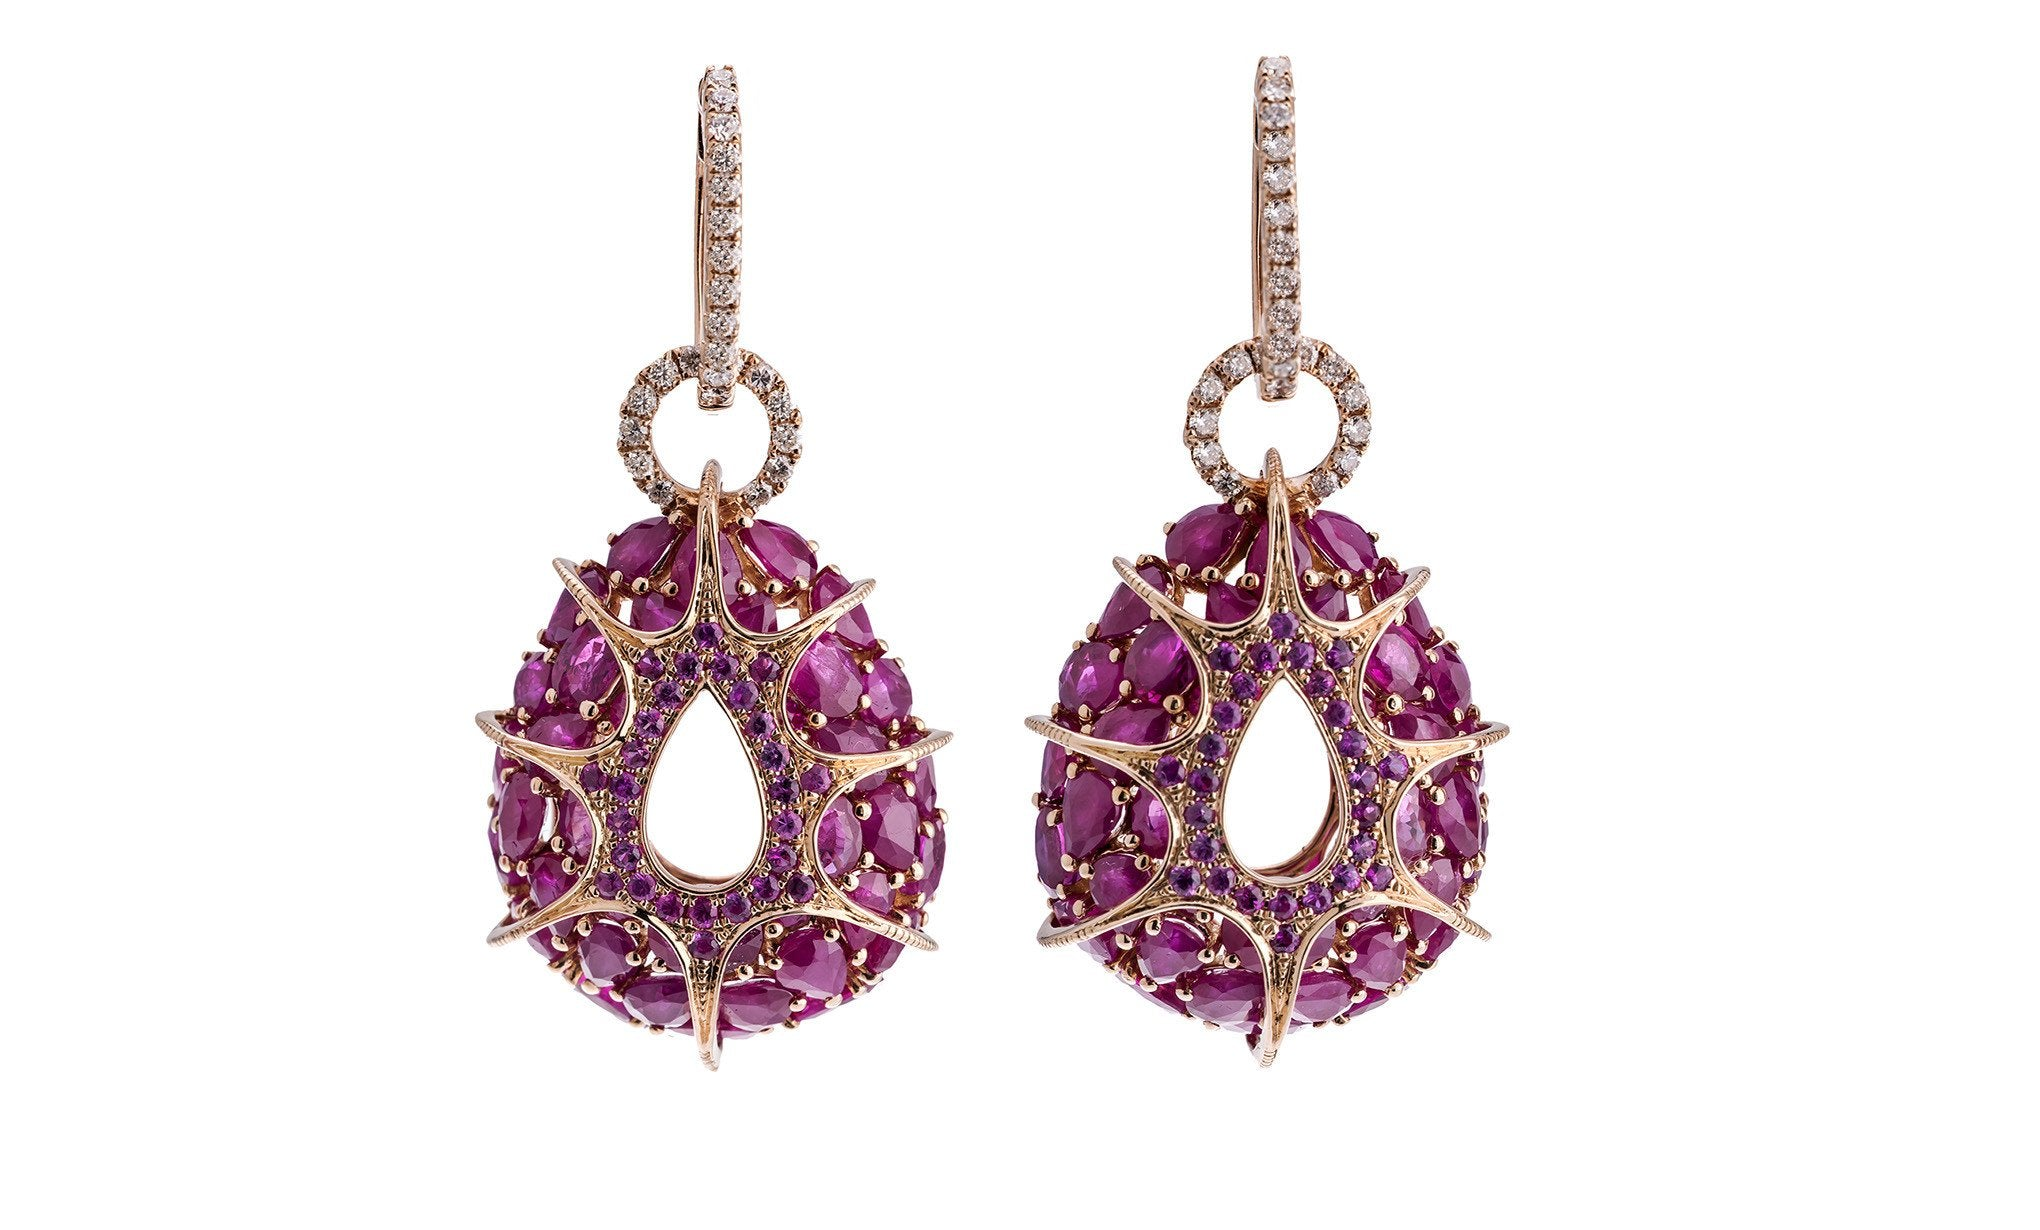 earrings joanna ruby gemfields regalia hardy trending jewellery dubai unveils